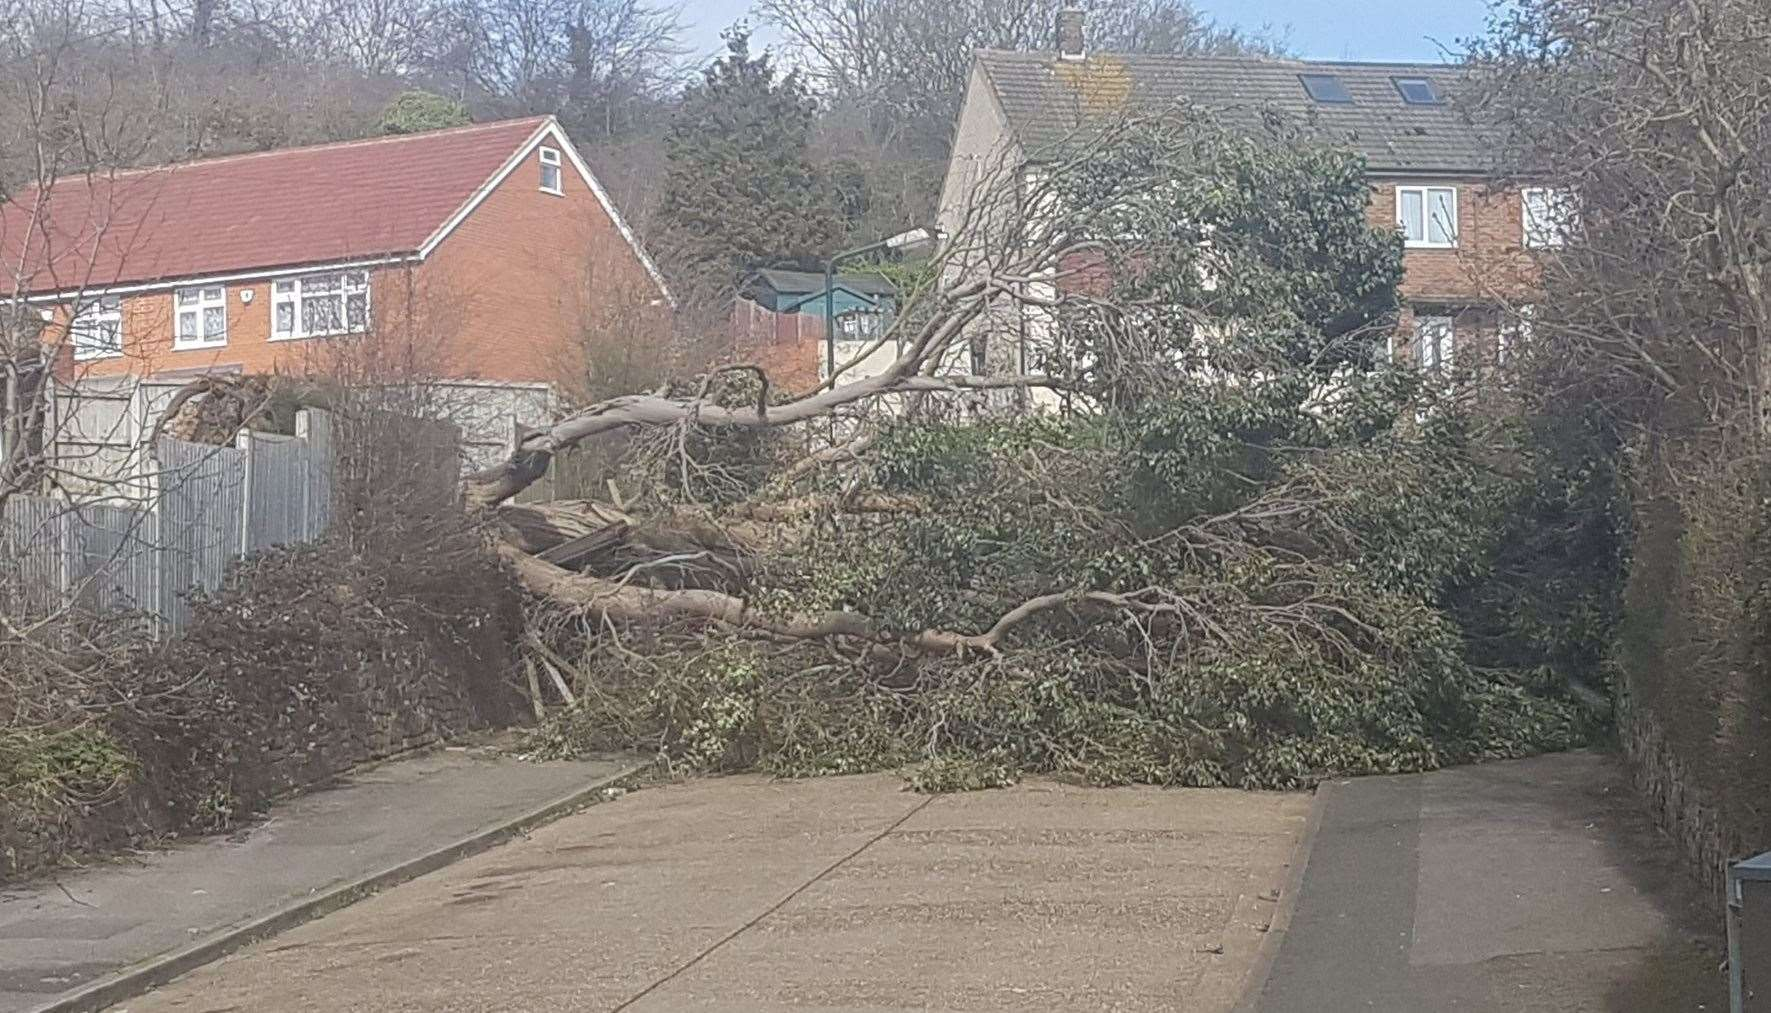 High winds brought down a tree in Carnation Road, Strood. Picture: Dawn Ellis